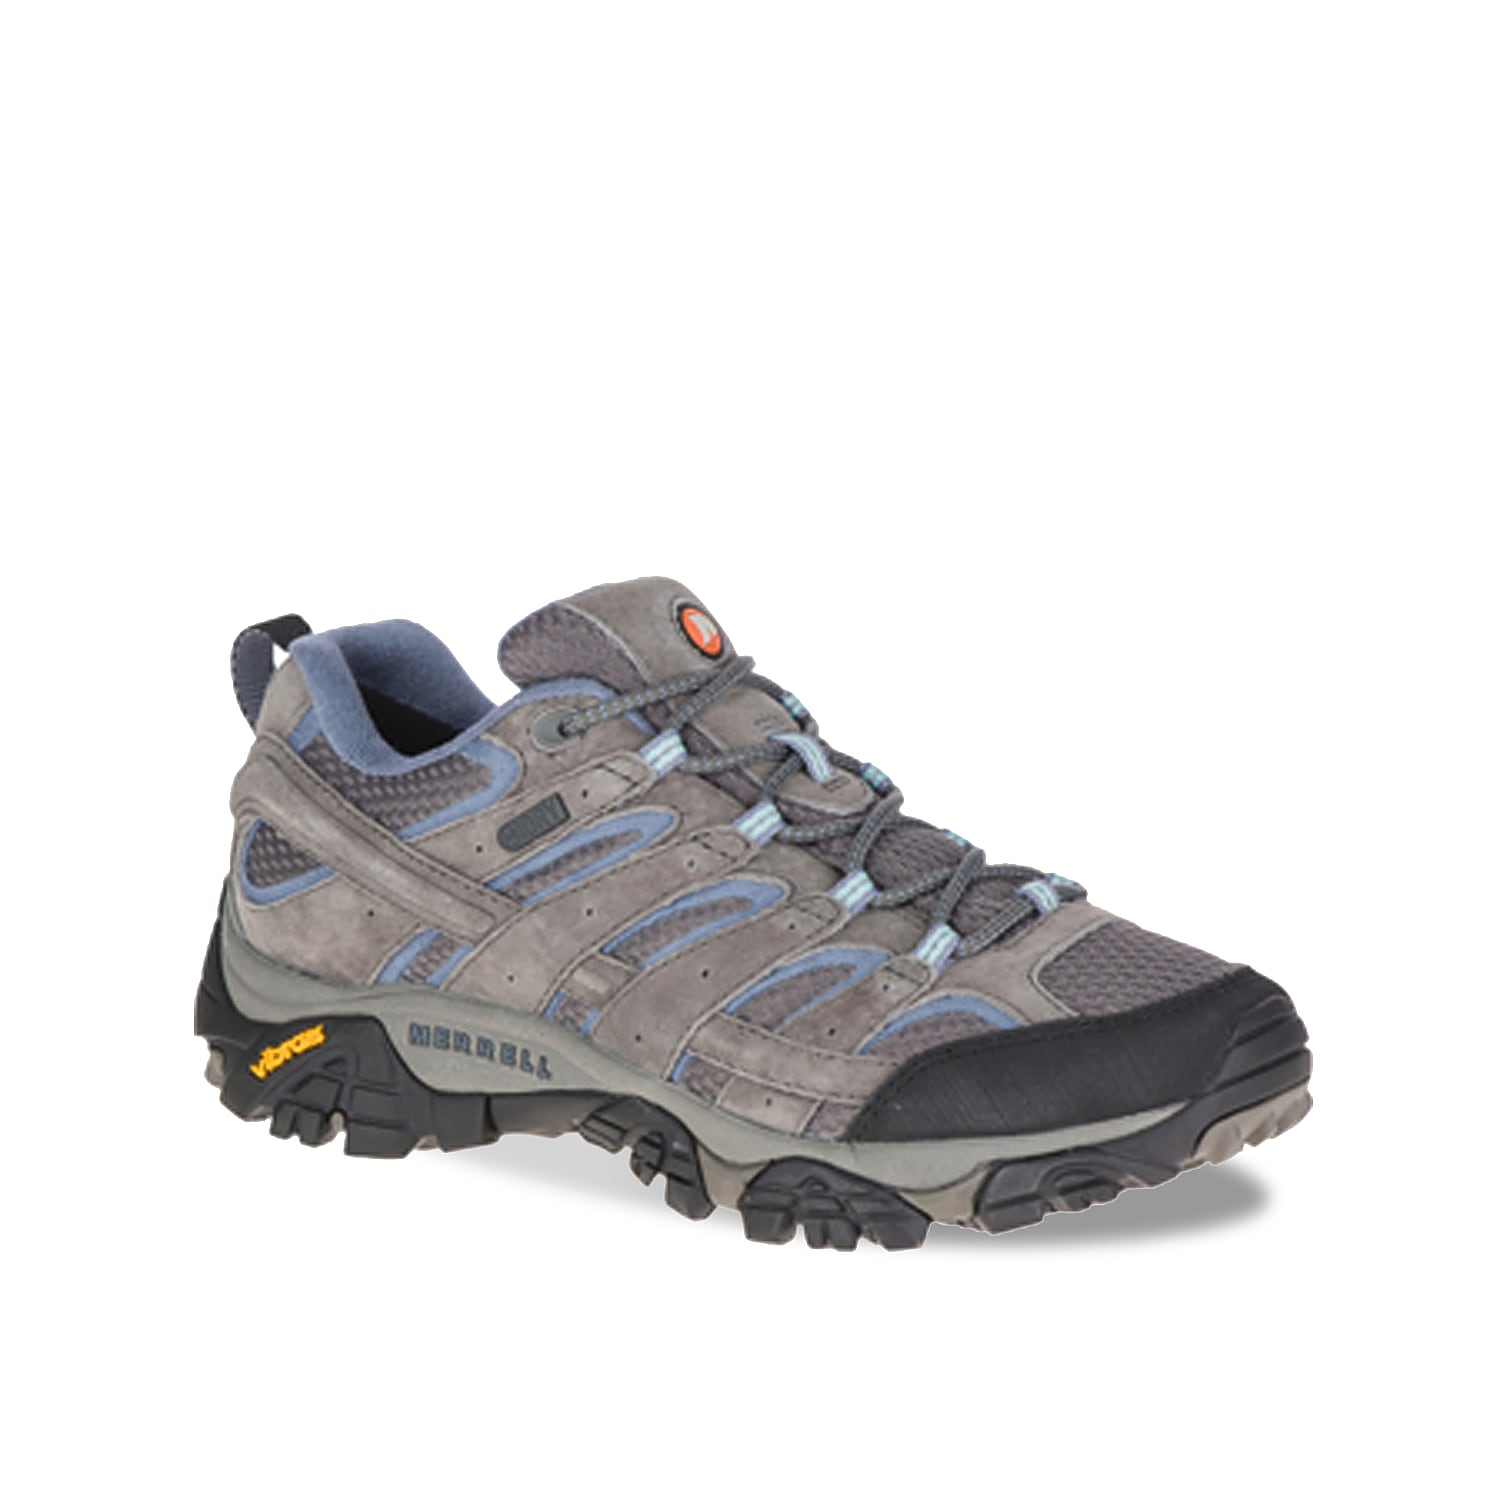 The Moab 2 Vent waterproof hiking shoe from Merrell will take on every terrain! Lace up this durable trail shoe and feel secure as you set off on an adventure.